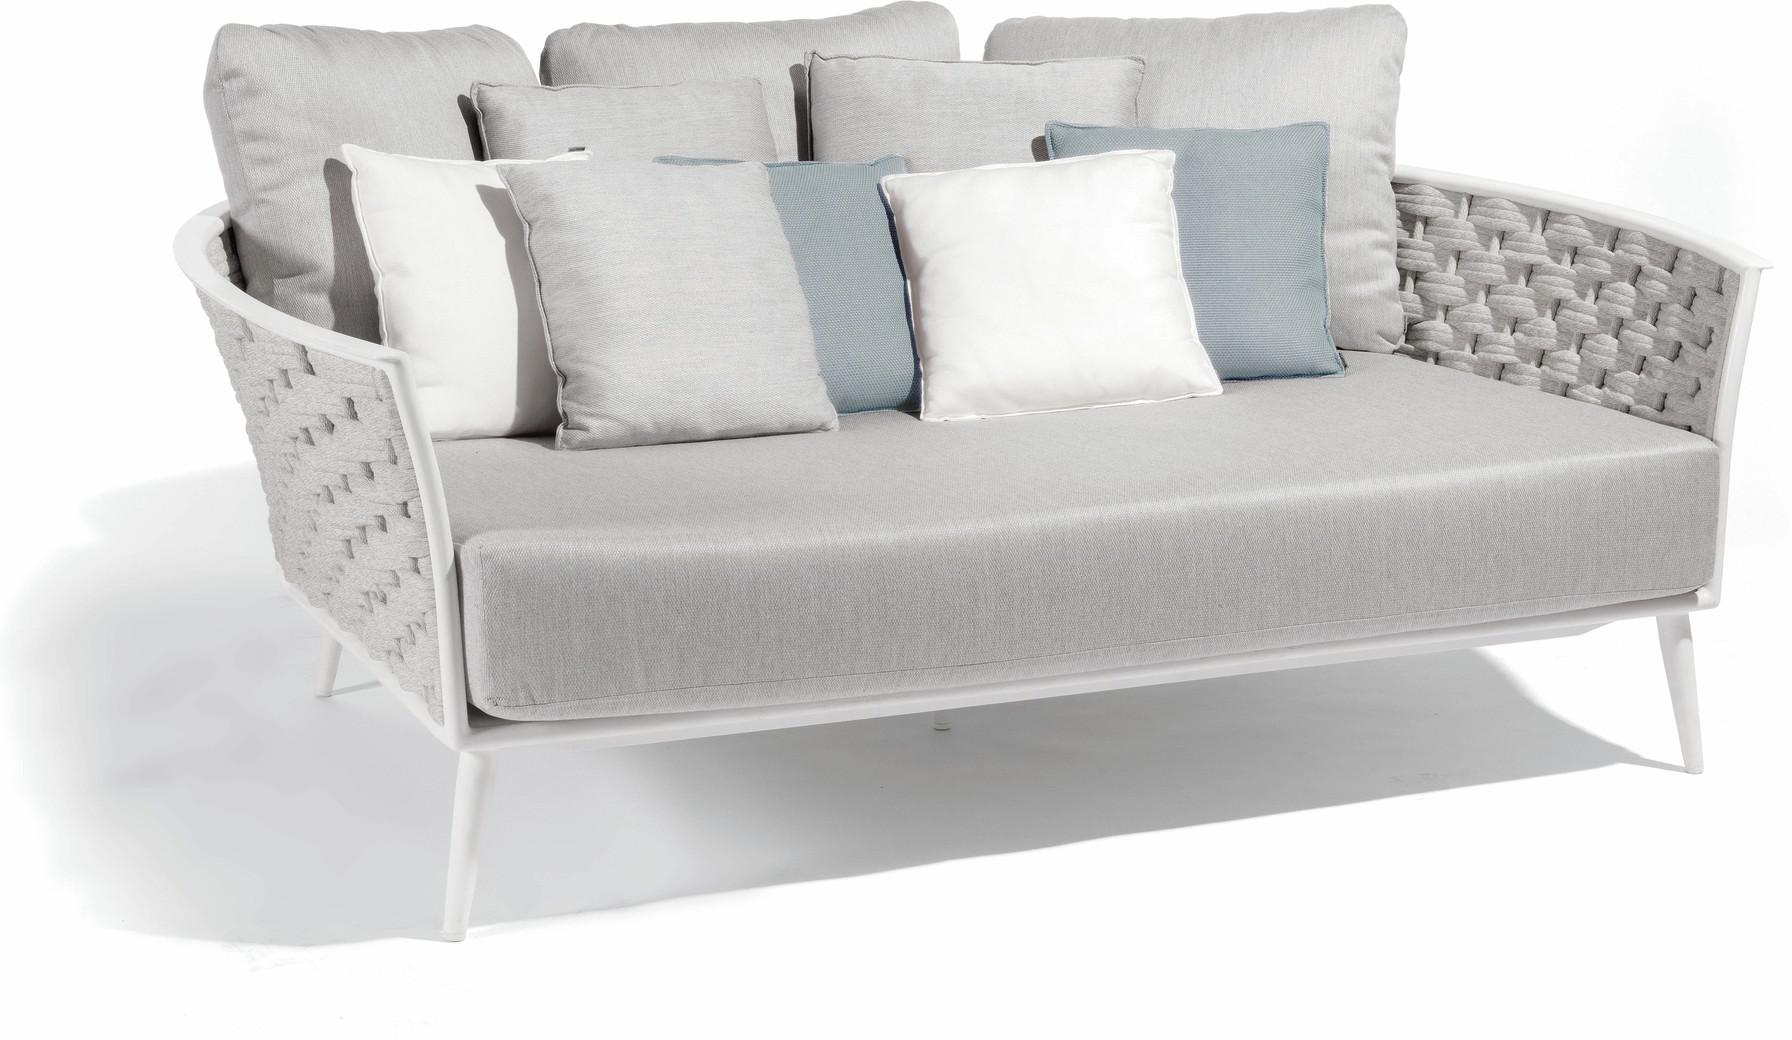 Cascade daybed - white - rope 45mm silver